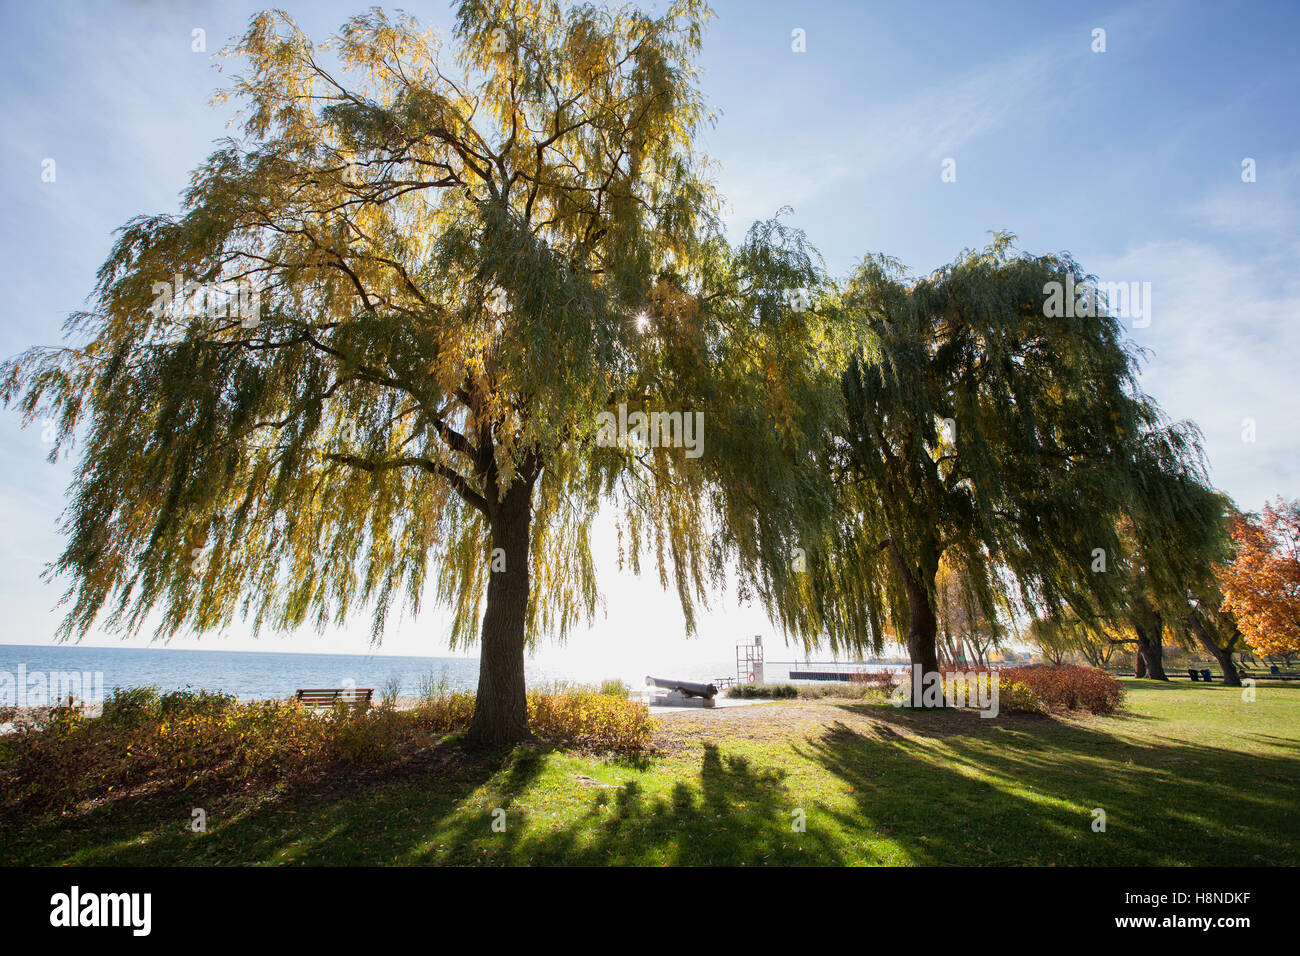 sunrays coming through the branches of a willow tree - Stock Image